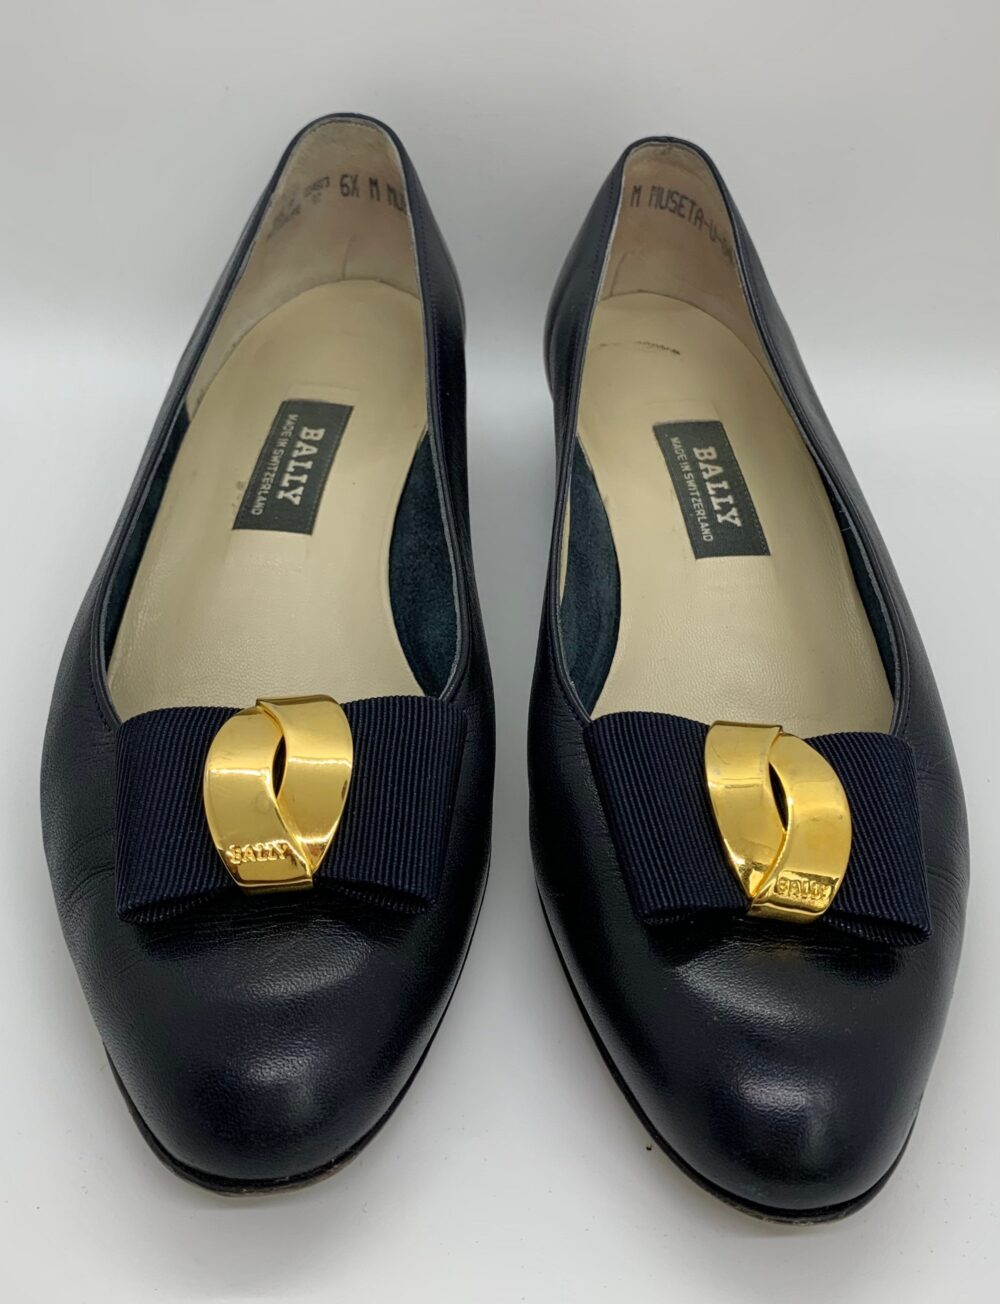 Vintage   Bally Museta Classic Navy Leather Low Pumps  Women's Shoes Bow Gold Logo Made in Switzerland Size 6.5M